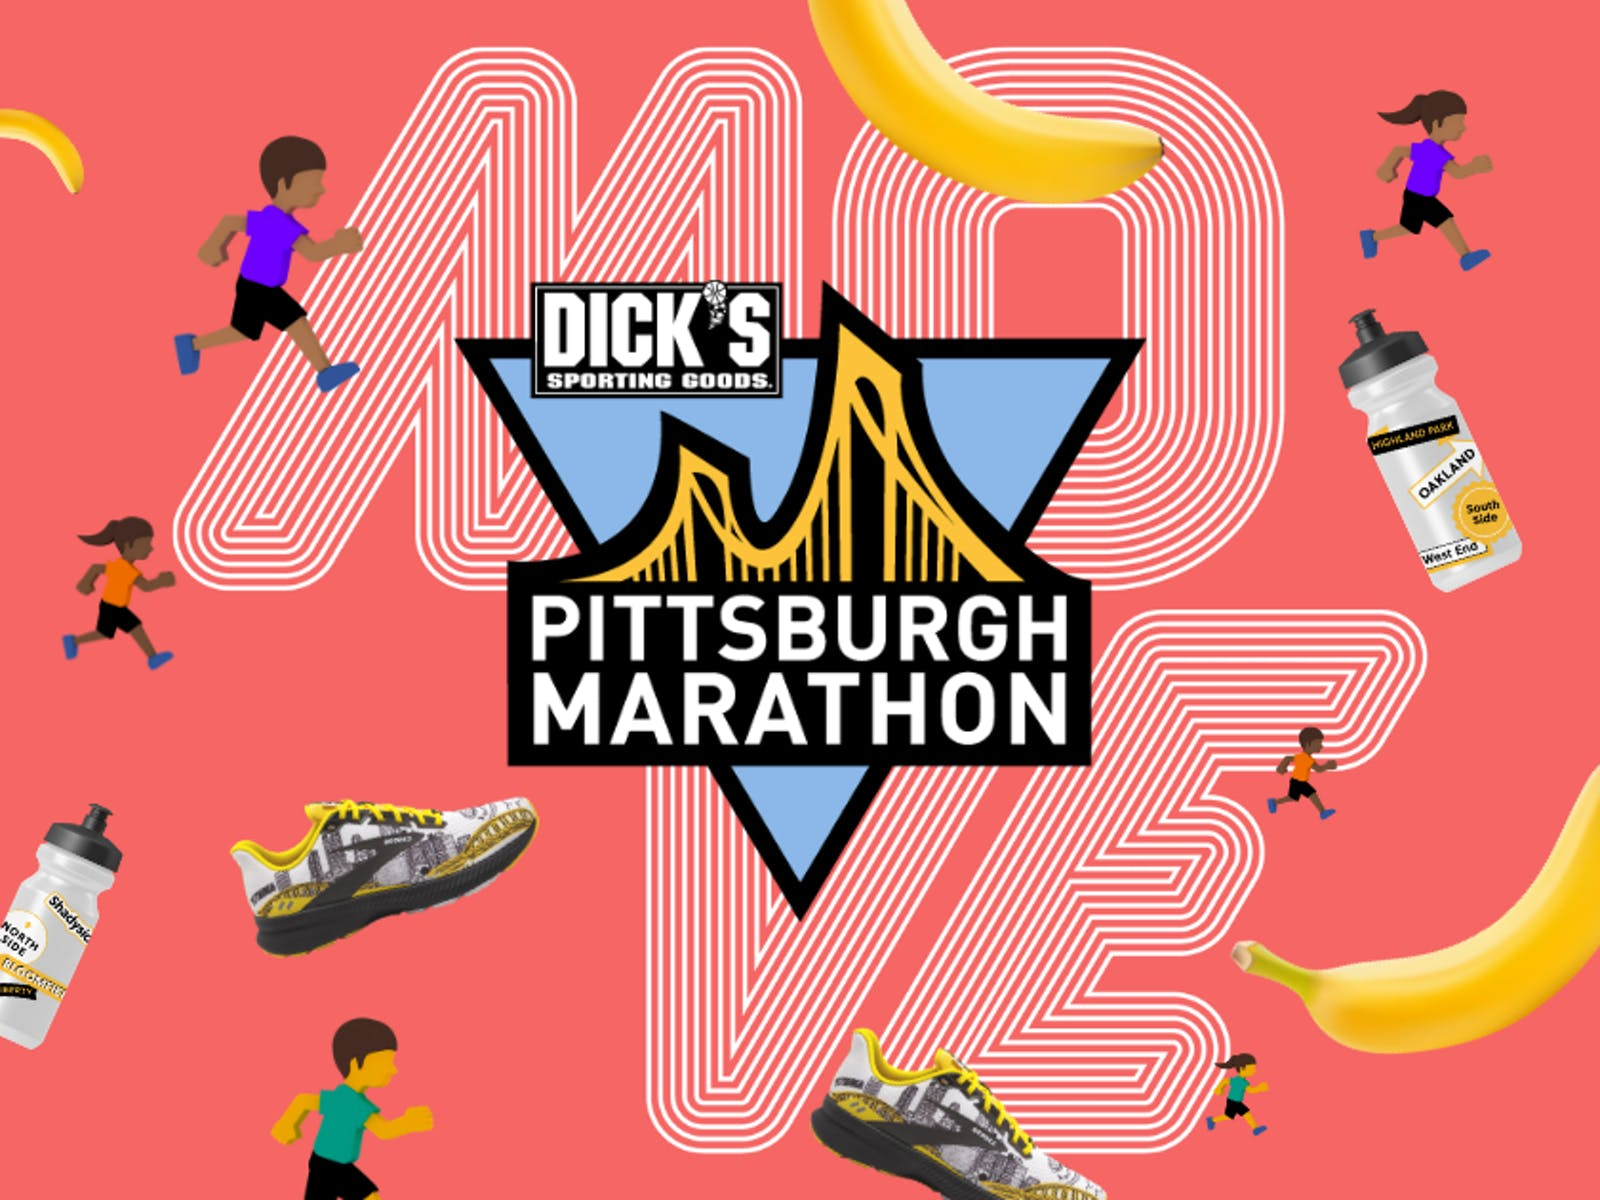 Pittsburgh Marathon logo surrounded by items including shoes and bananas